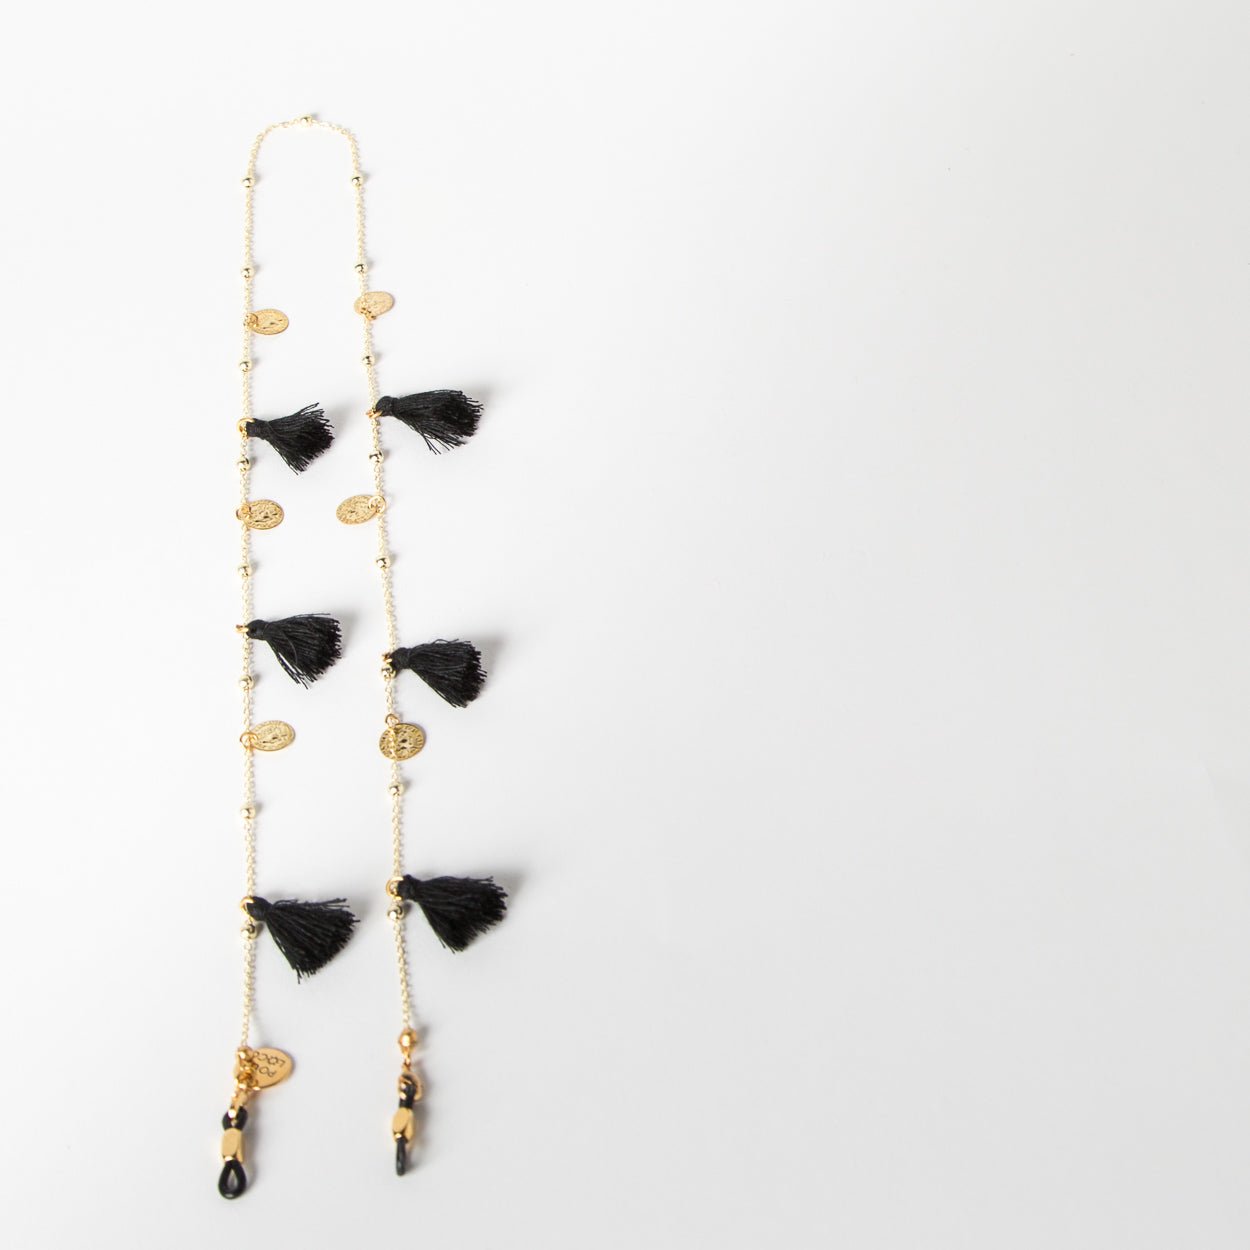 eyewear chain accessory in black and gold by SpecSet at Secret Location